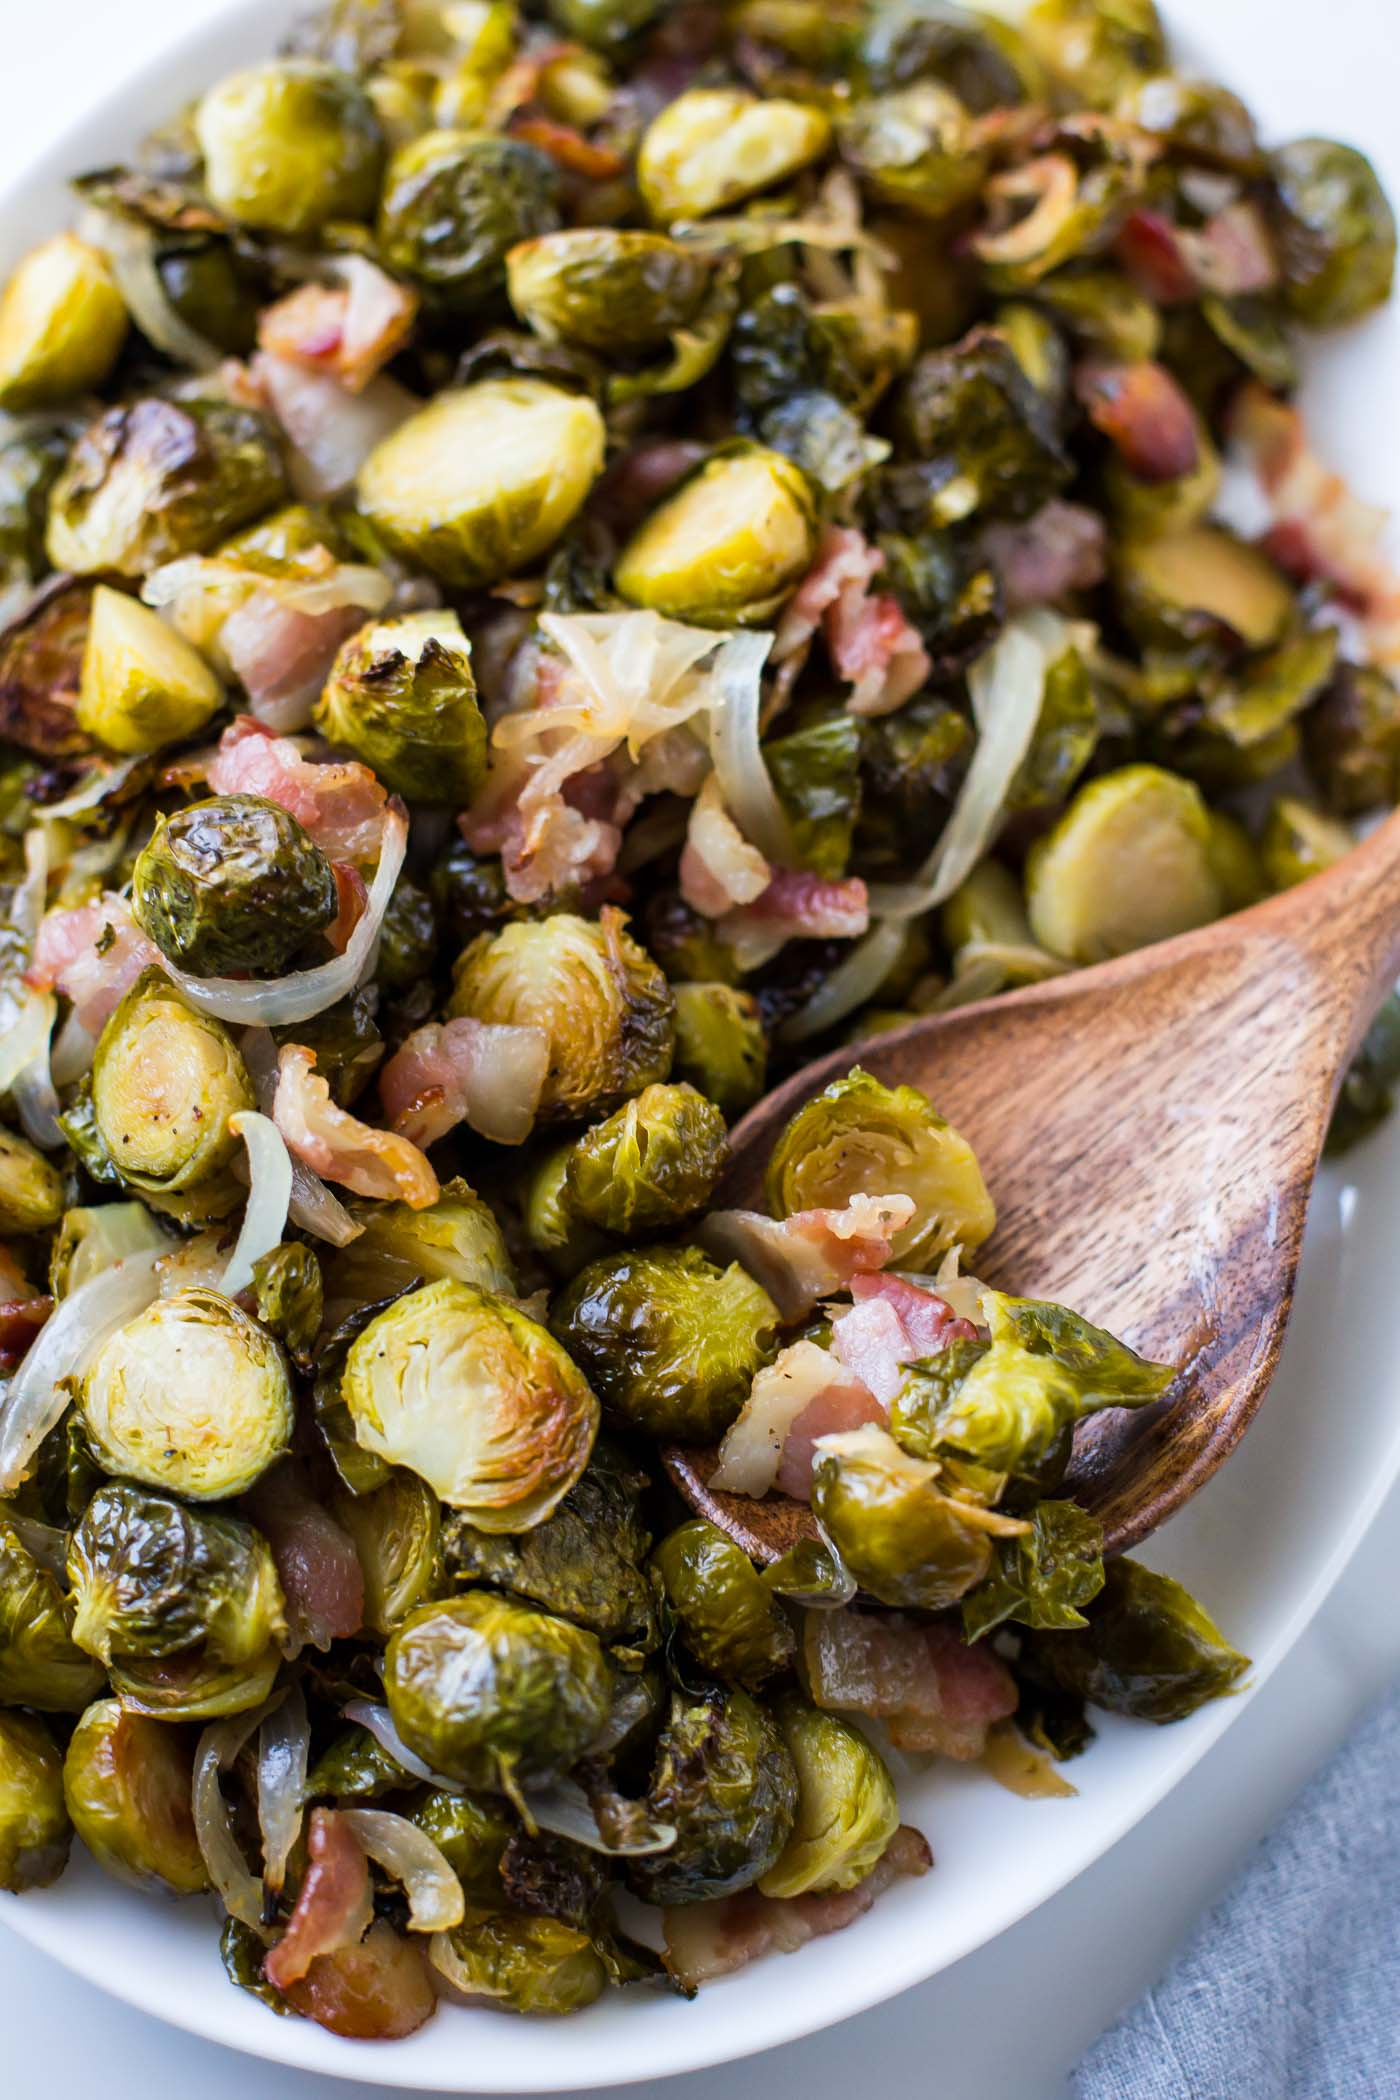 Maple roasted brussels sprouts with bacon on a white plate with a wooden spoon